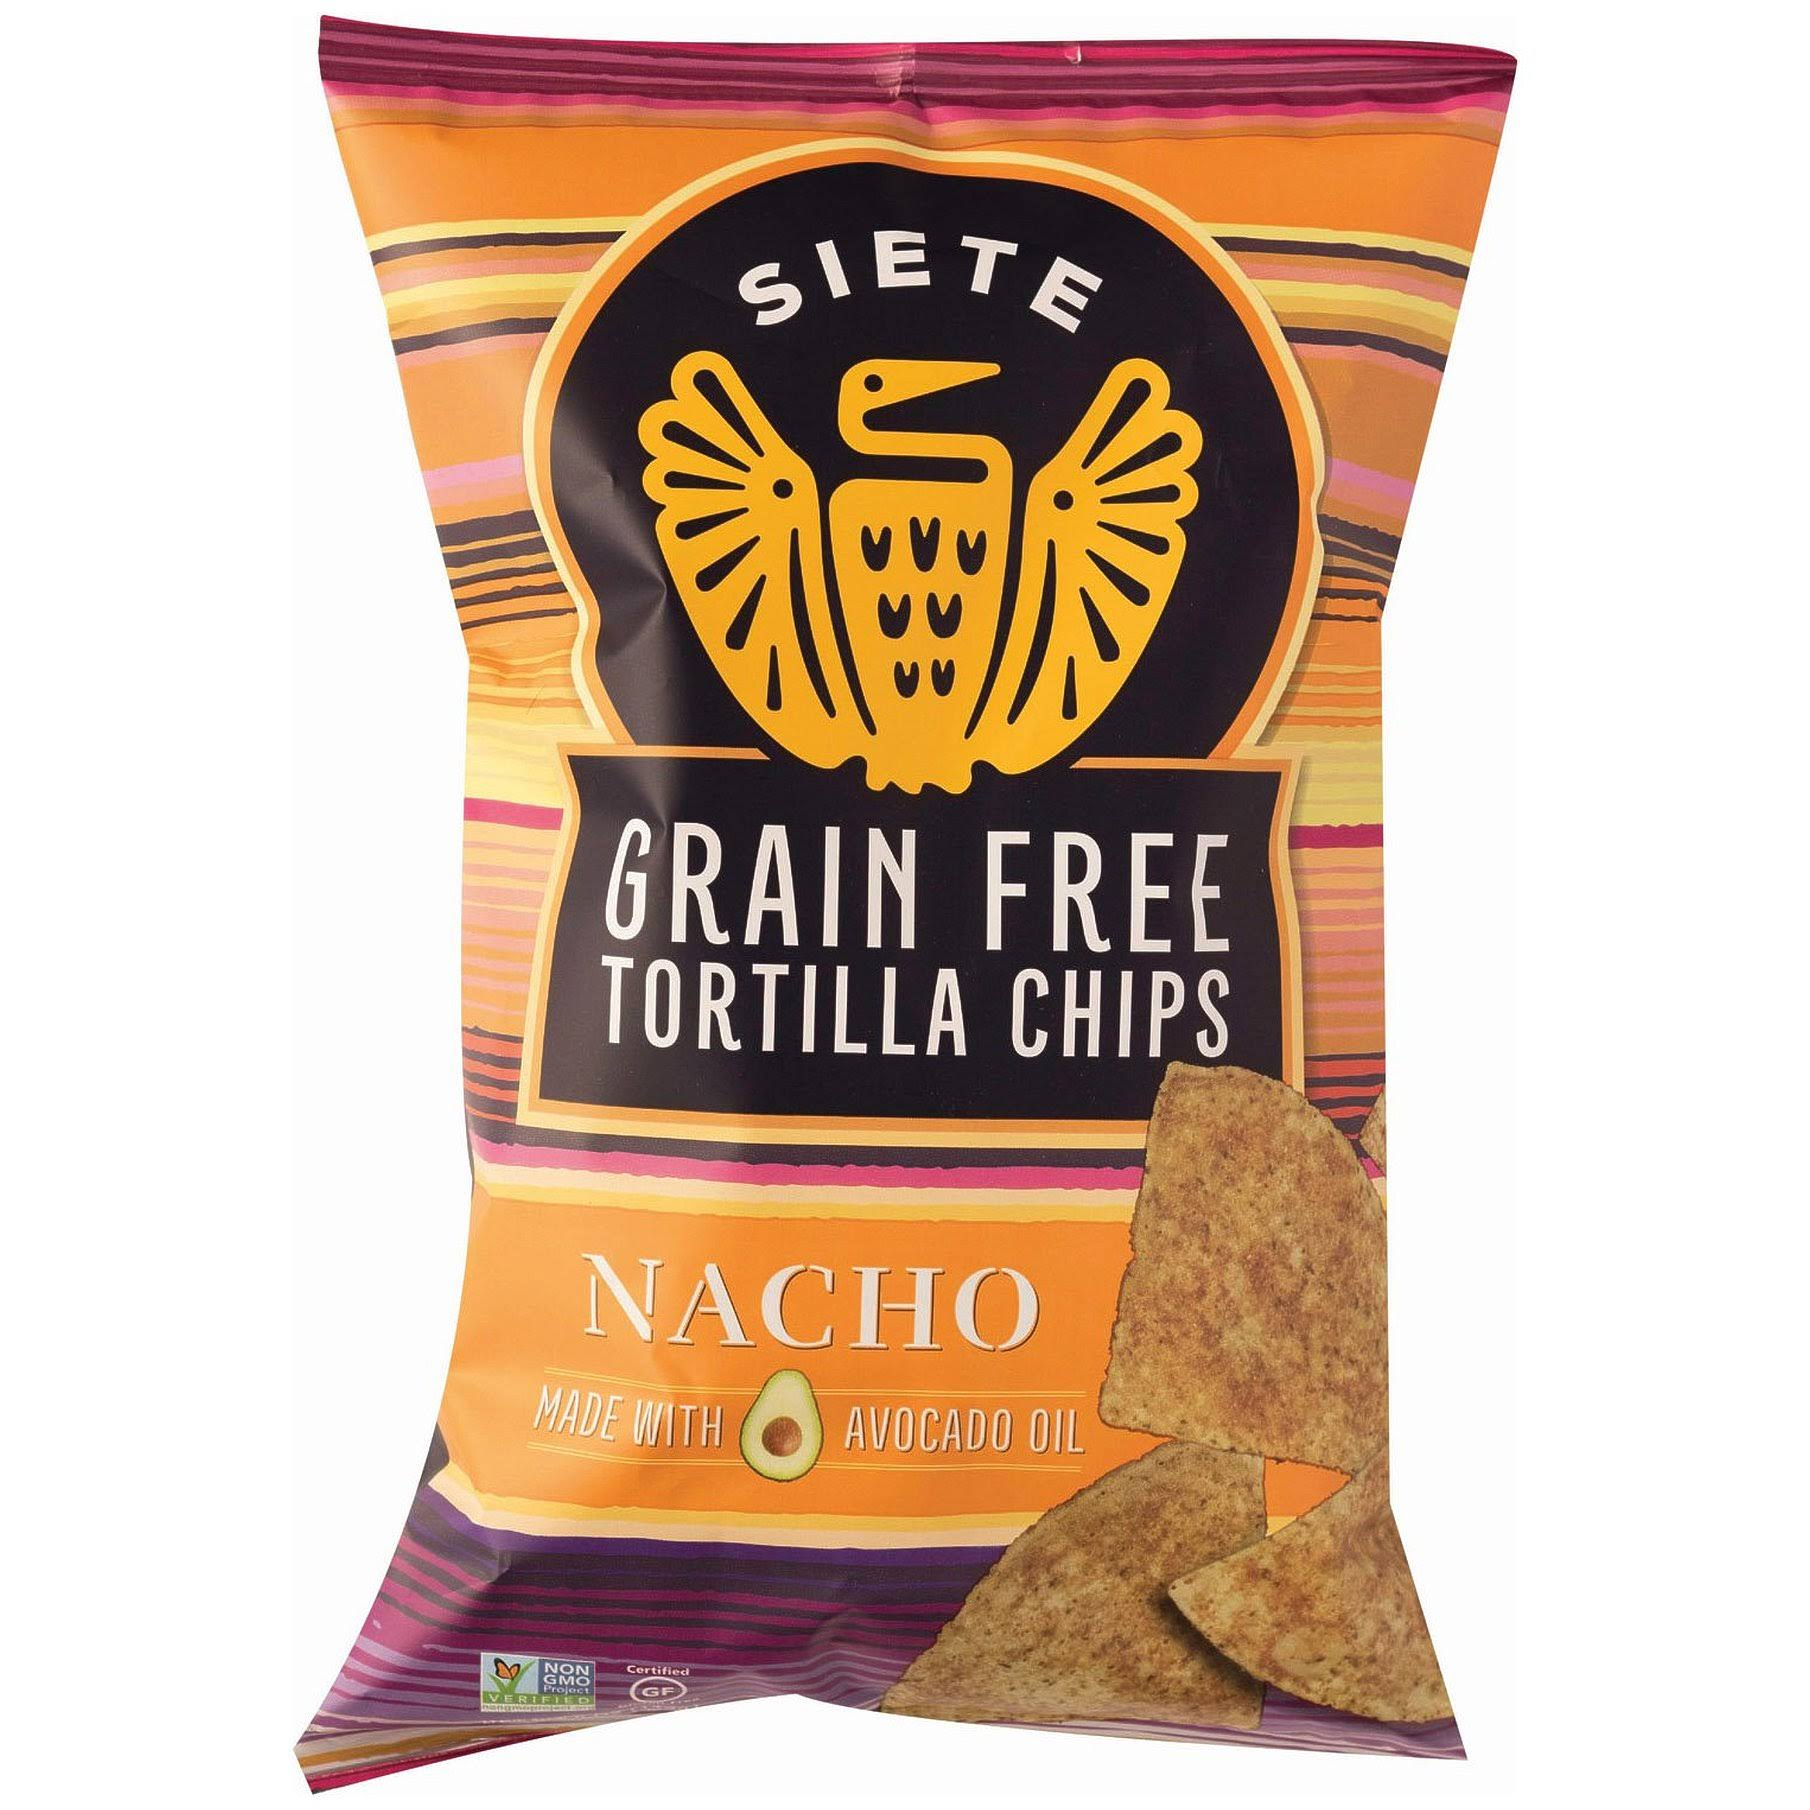 Siete Nacho Grain Free Tortilla Chips - 5 oz packet